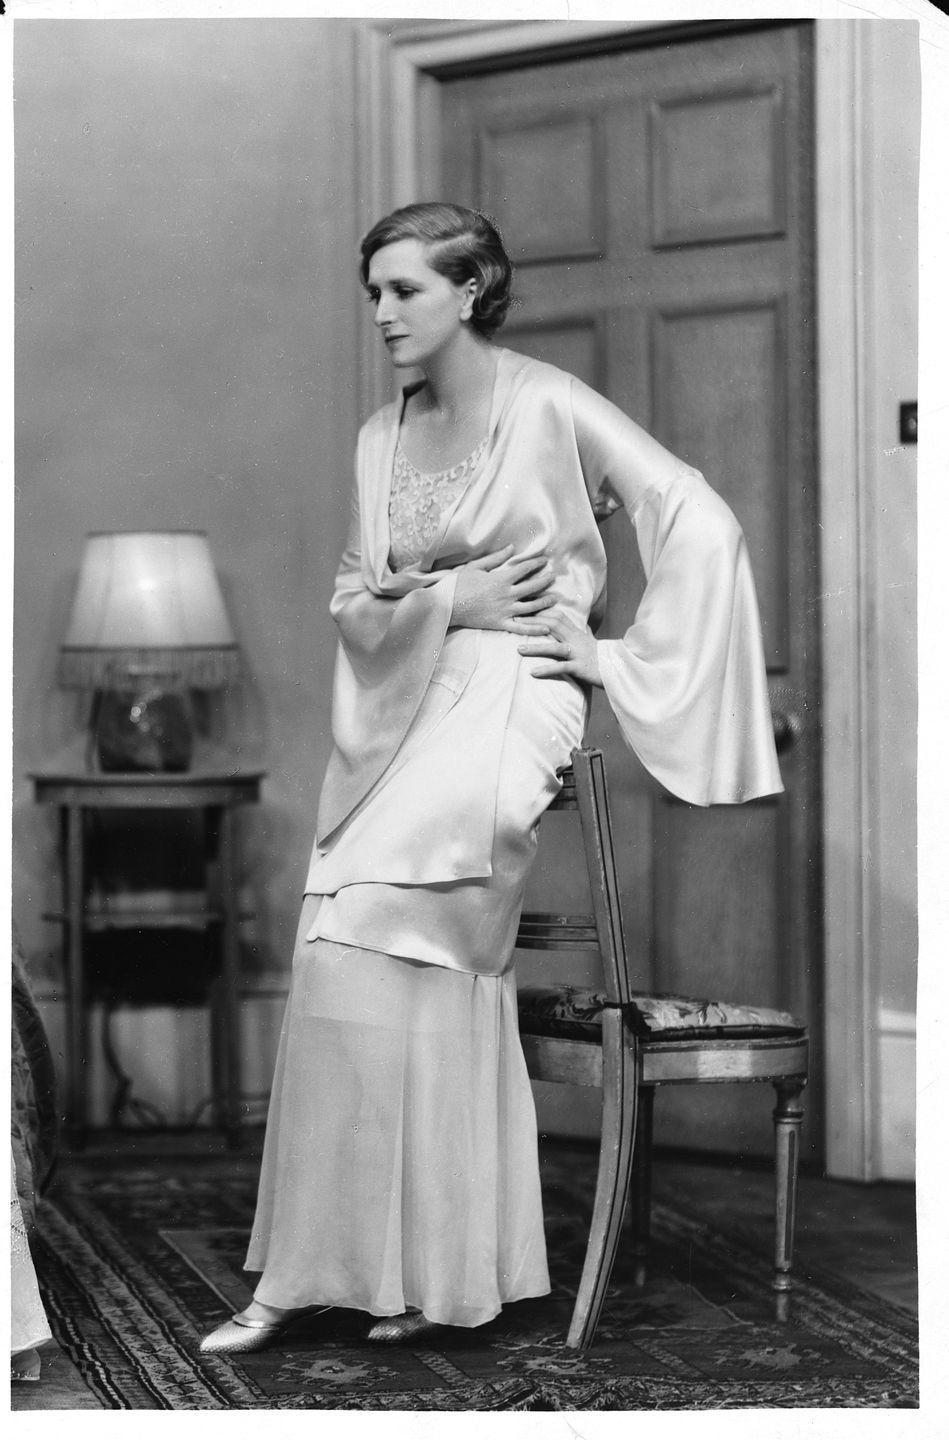 <p>Cooper reprised her role as Clemency Warlock in Cynara for 250 performances, with this sophisticated night gown and bell-sleeved robe making for a memorable ensemble from British fashion designer Edward Molyneux, who dressed royals and other 20th century style icons—and whose proteges include Christian Dior and Pierre Balmain. </p>